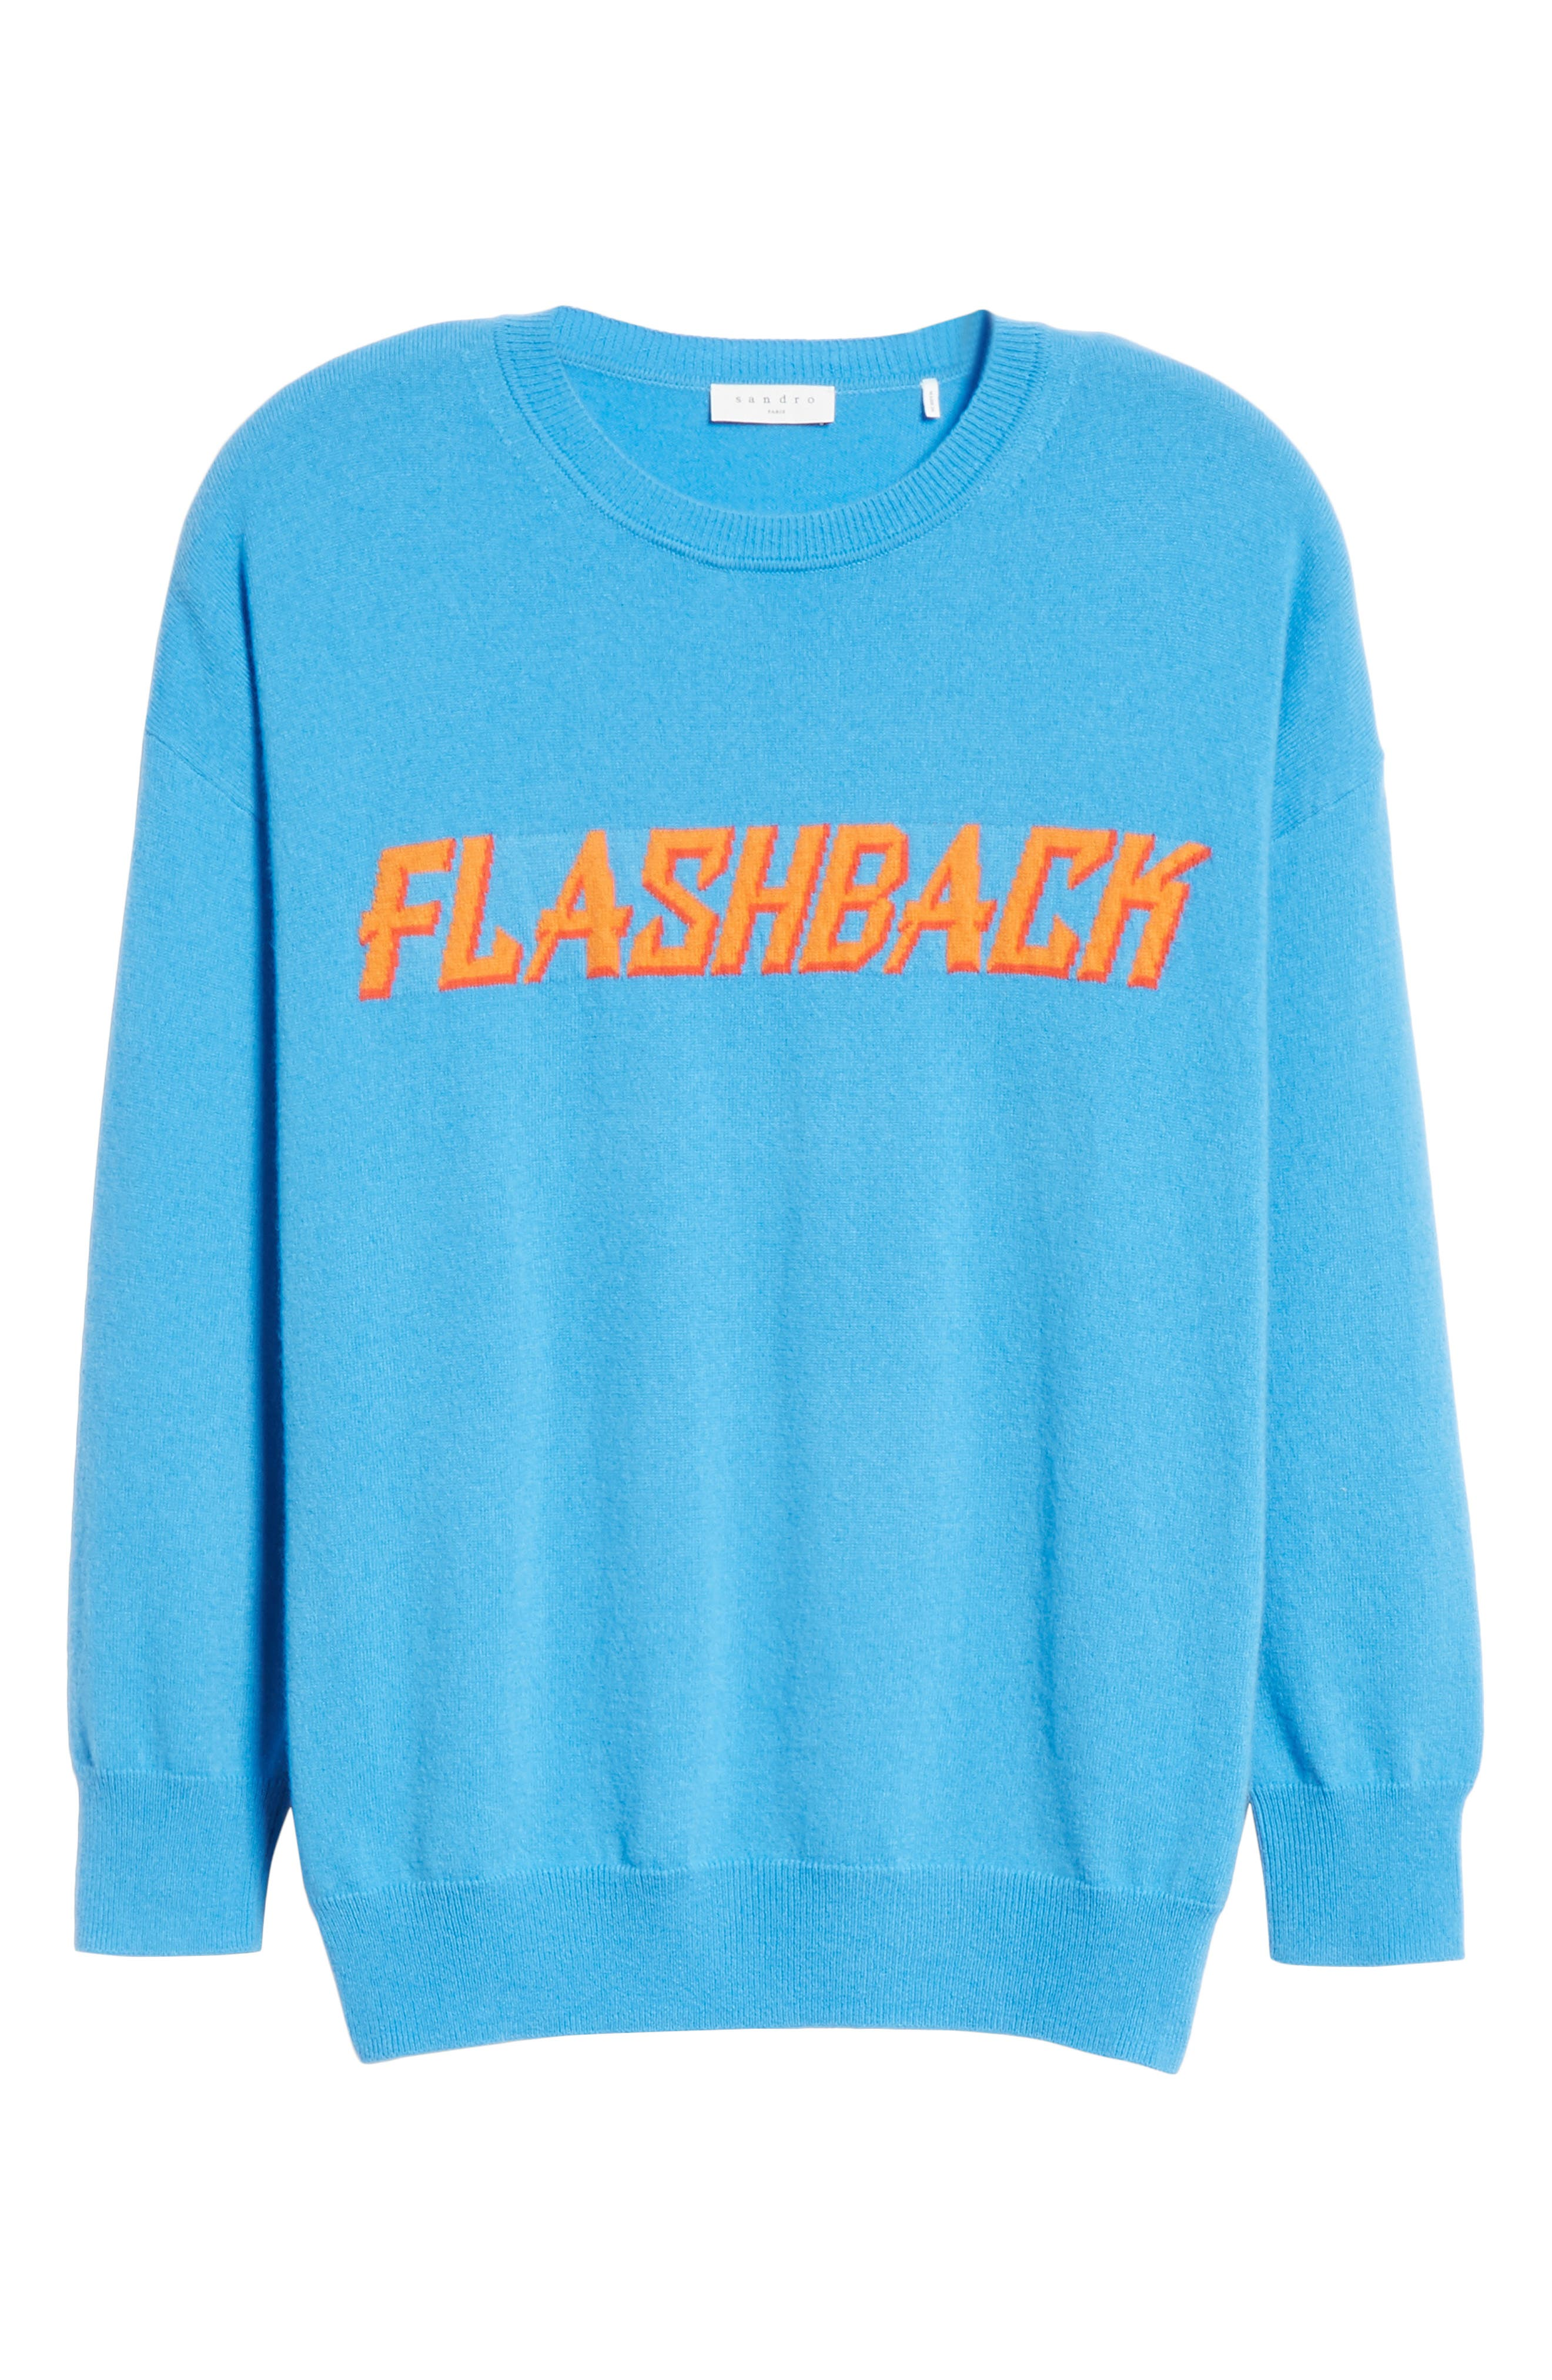 Flashback Wool & Cashmere Sweater,                             Alternate thumbnail 6, color,                             400